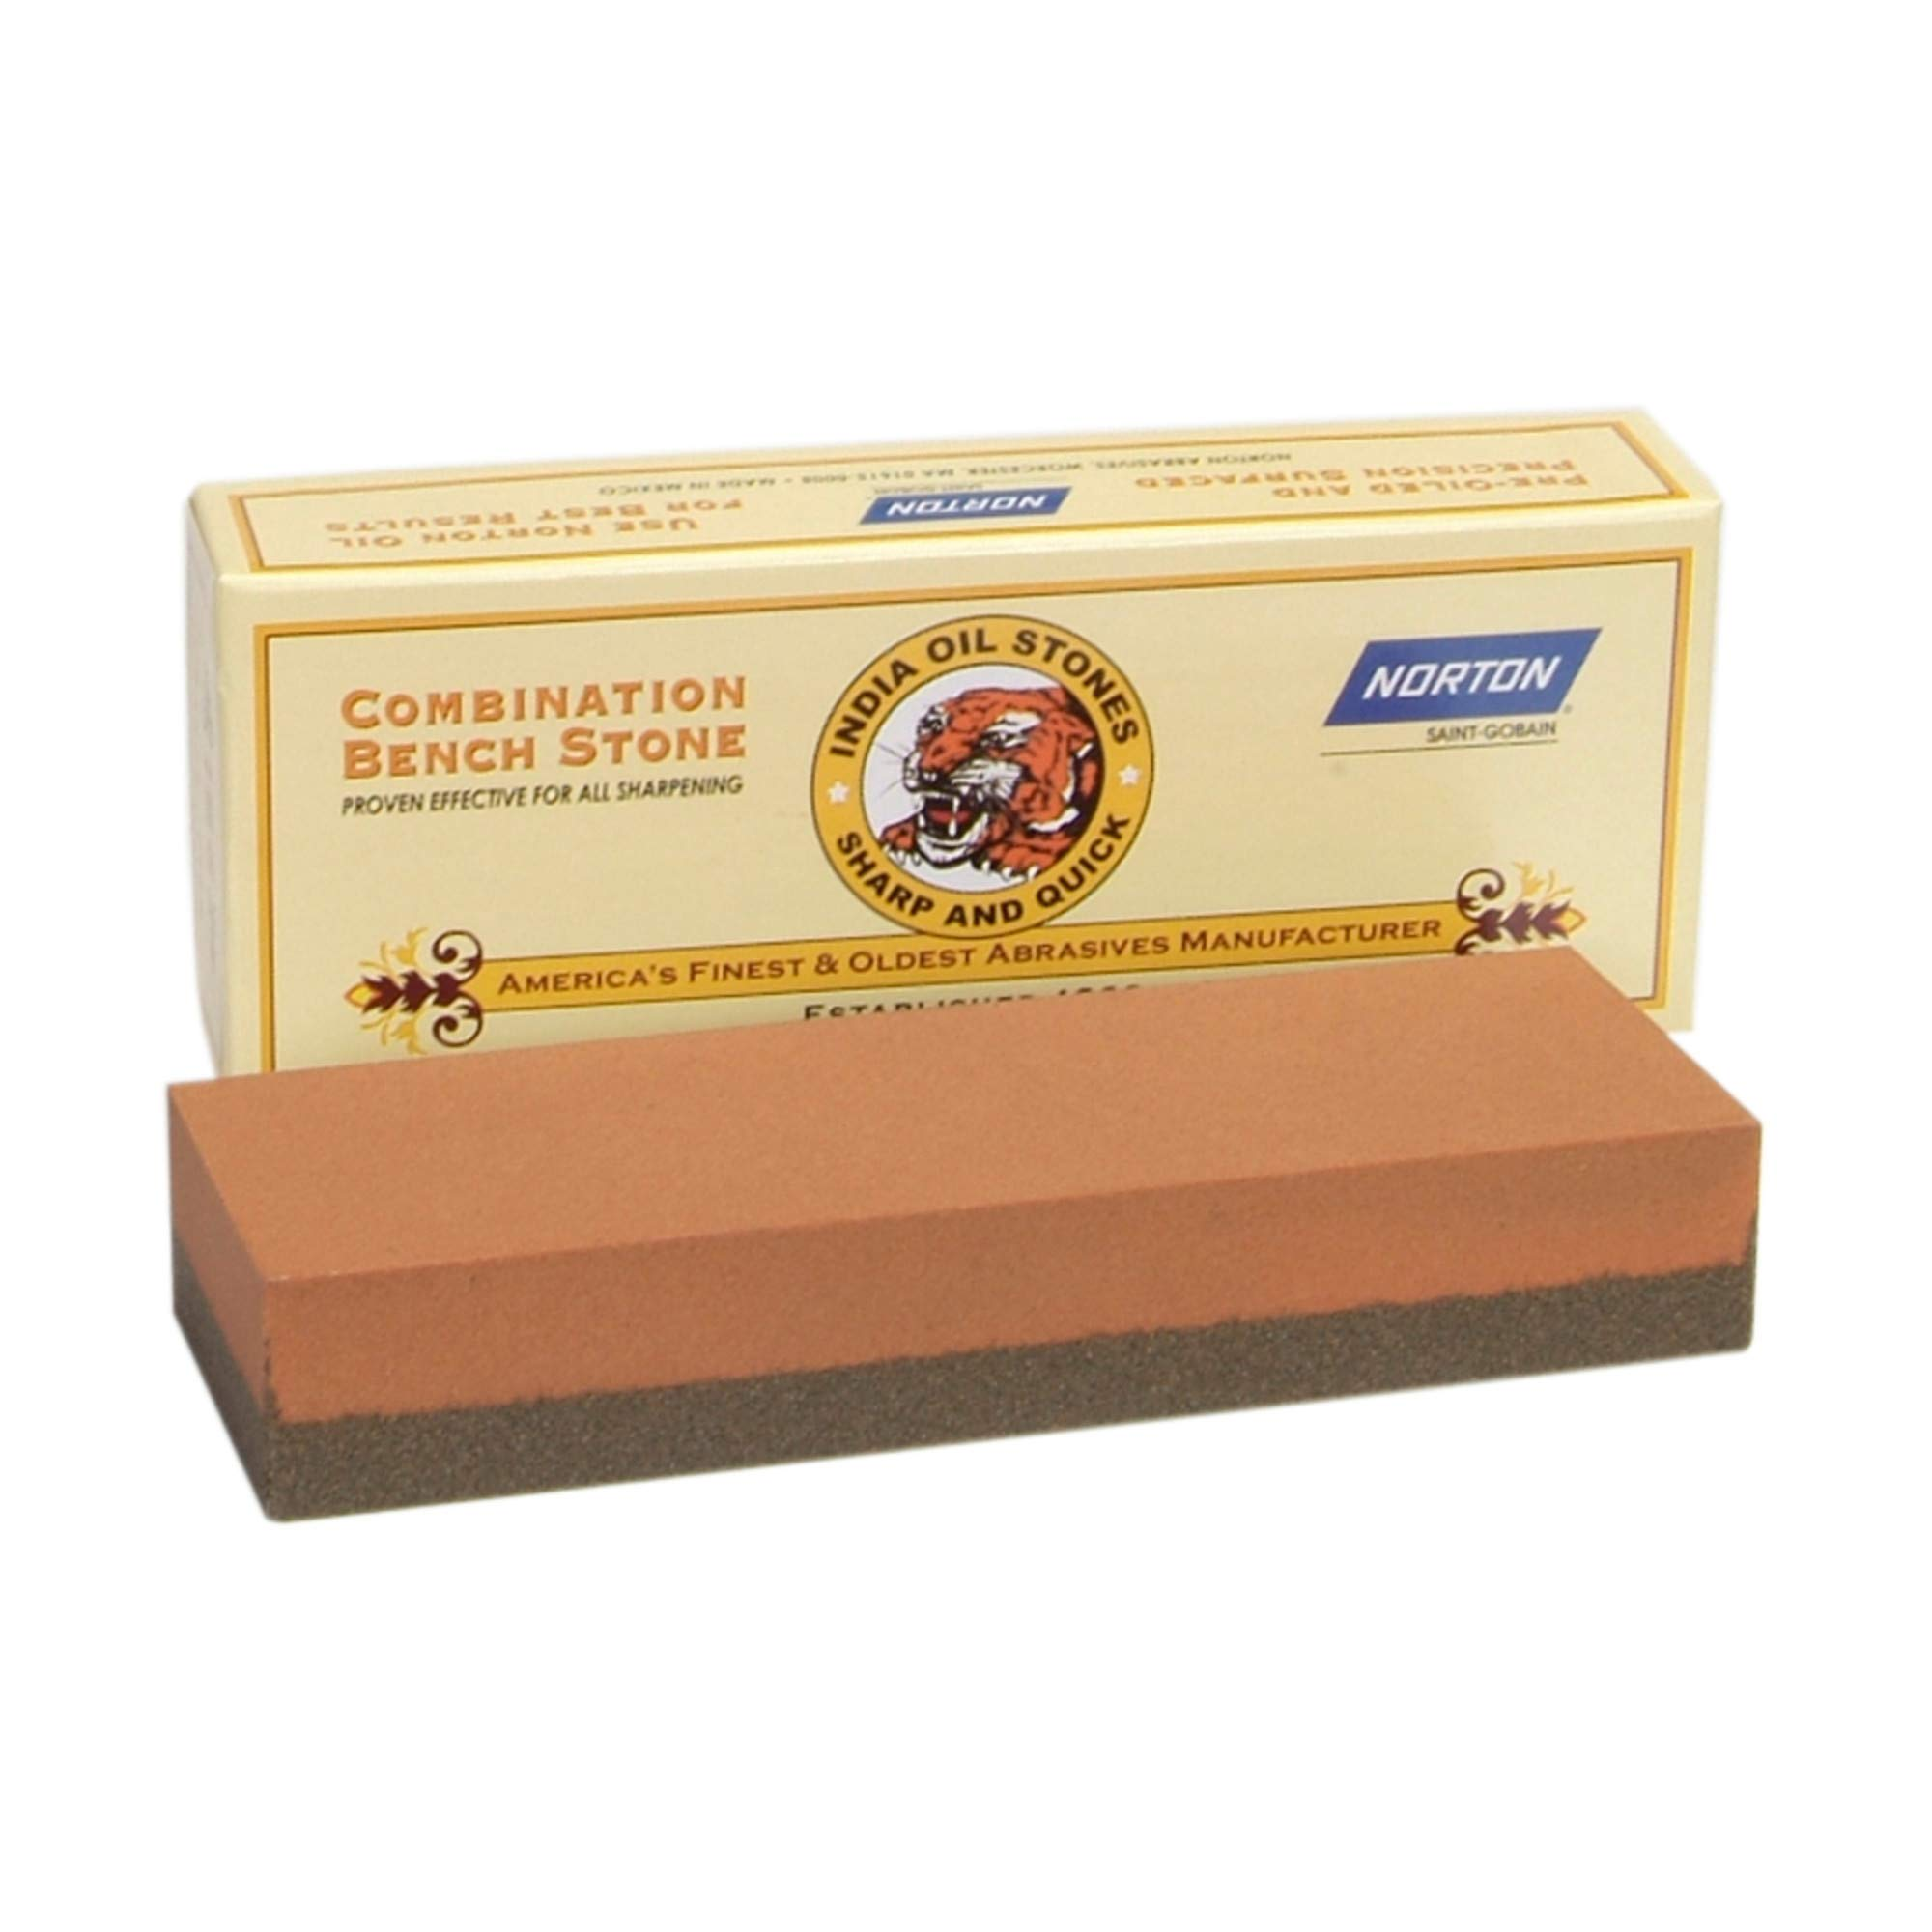 Norton Bench Shape 6 x 2 x 1'' Size 100/320 Micron Grade Coarse/Fine Grit India Sharpening Stone